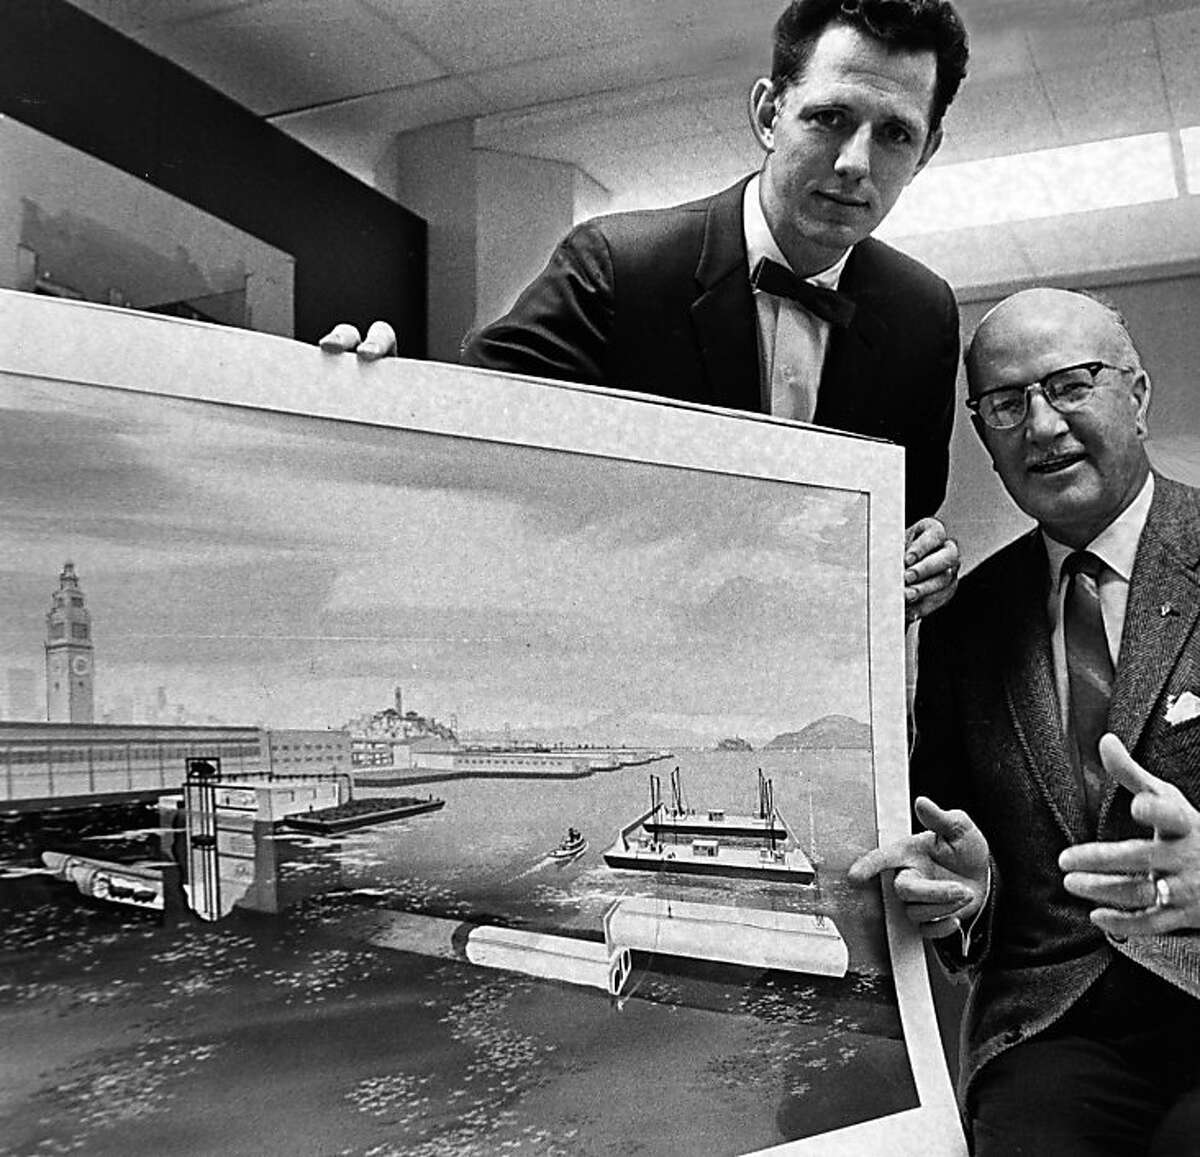 Project engineer Martin Kelley (left) and Peter Kiewit Co. chief engineer C.L. Gallimore smile over plans for the BART bay tube on March 11, 1966.Project engineer Martin Kelley (left) and Peter Kiewit Co. chief engineer C.L. Gallimore smile over plans for the BART bay tube on March 11, 1966.